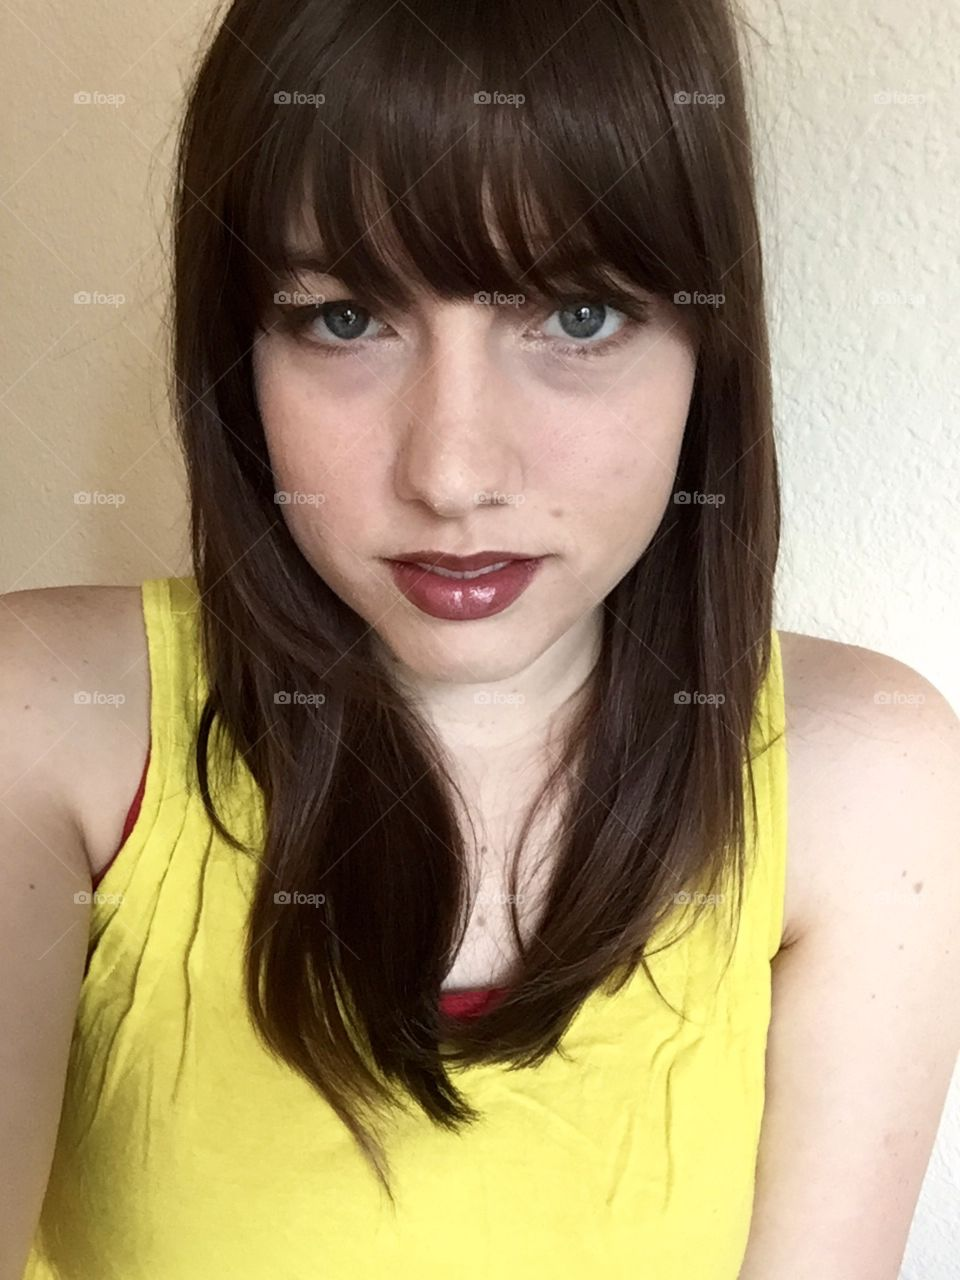 Cut my own bangs and felt good about it. Taken during my summer marketing internship in Colorado. I was 20 with blue eyes and a fair complexion.